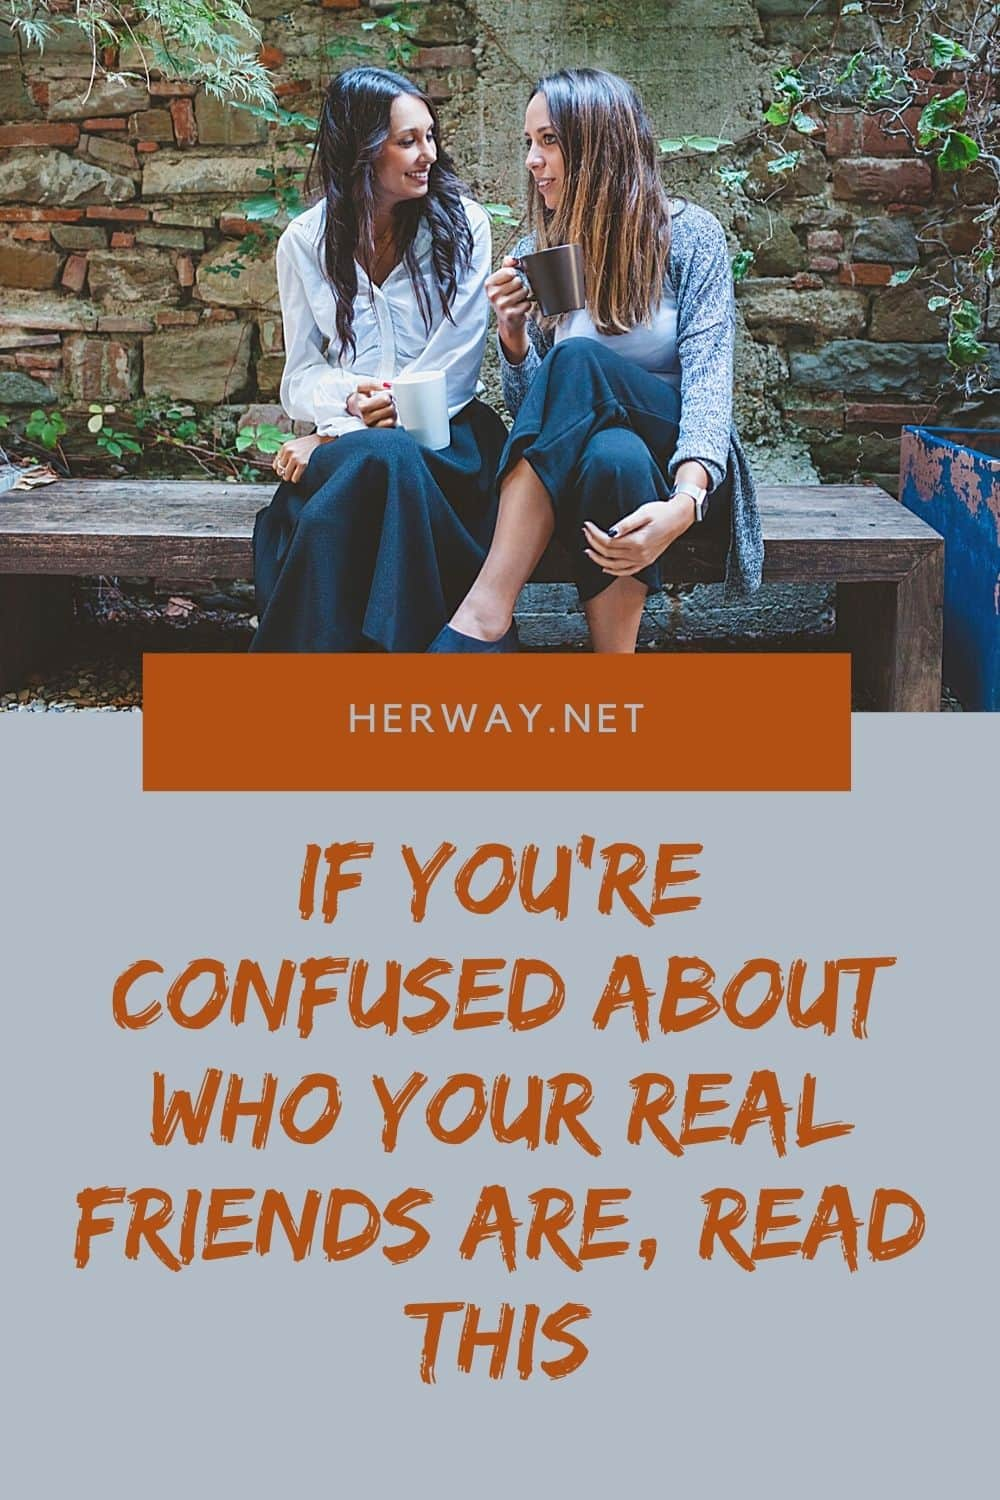 If You're Confused About Who Your Real Friends Are, Read This